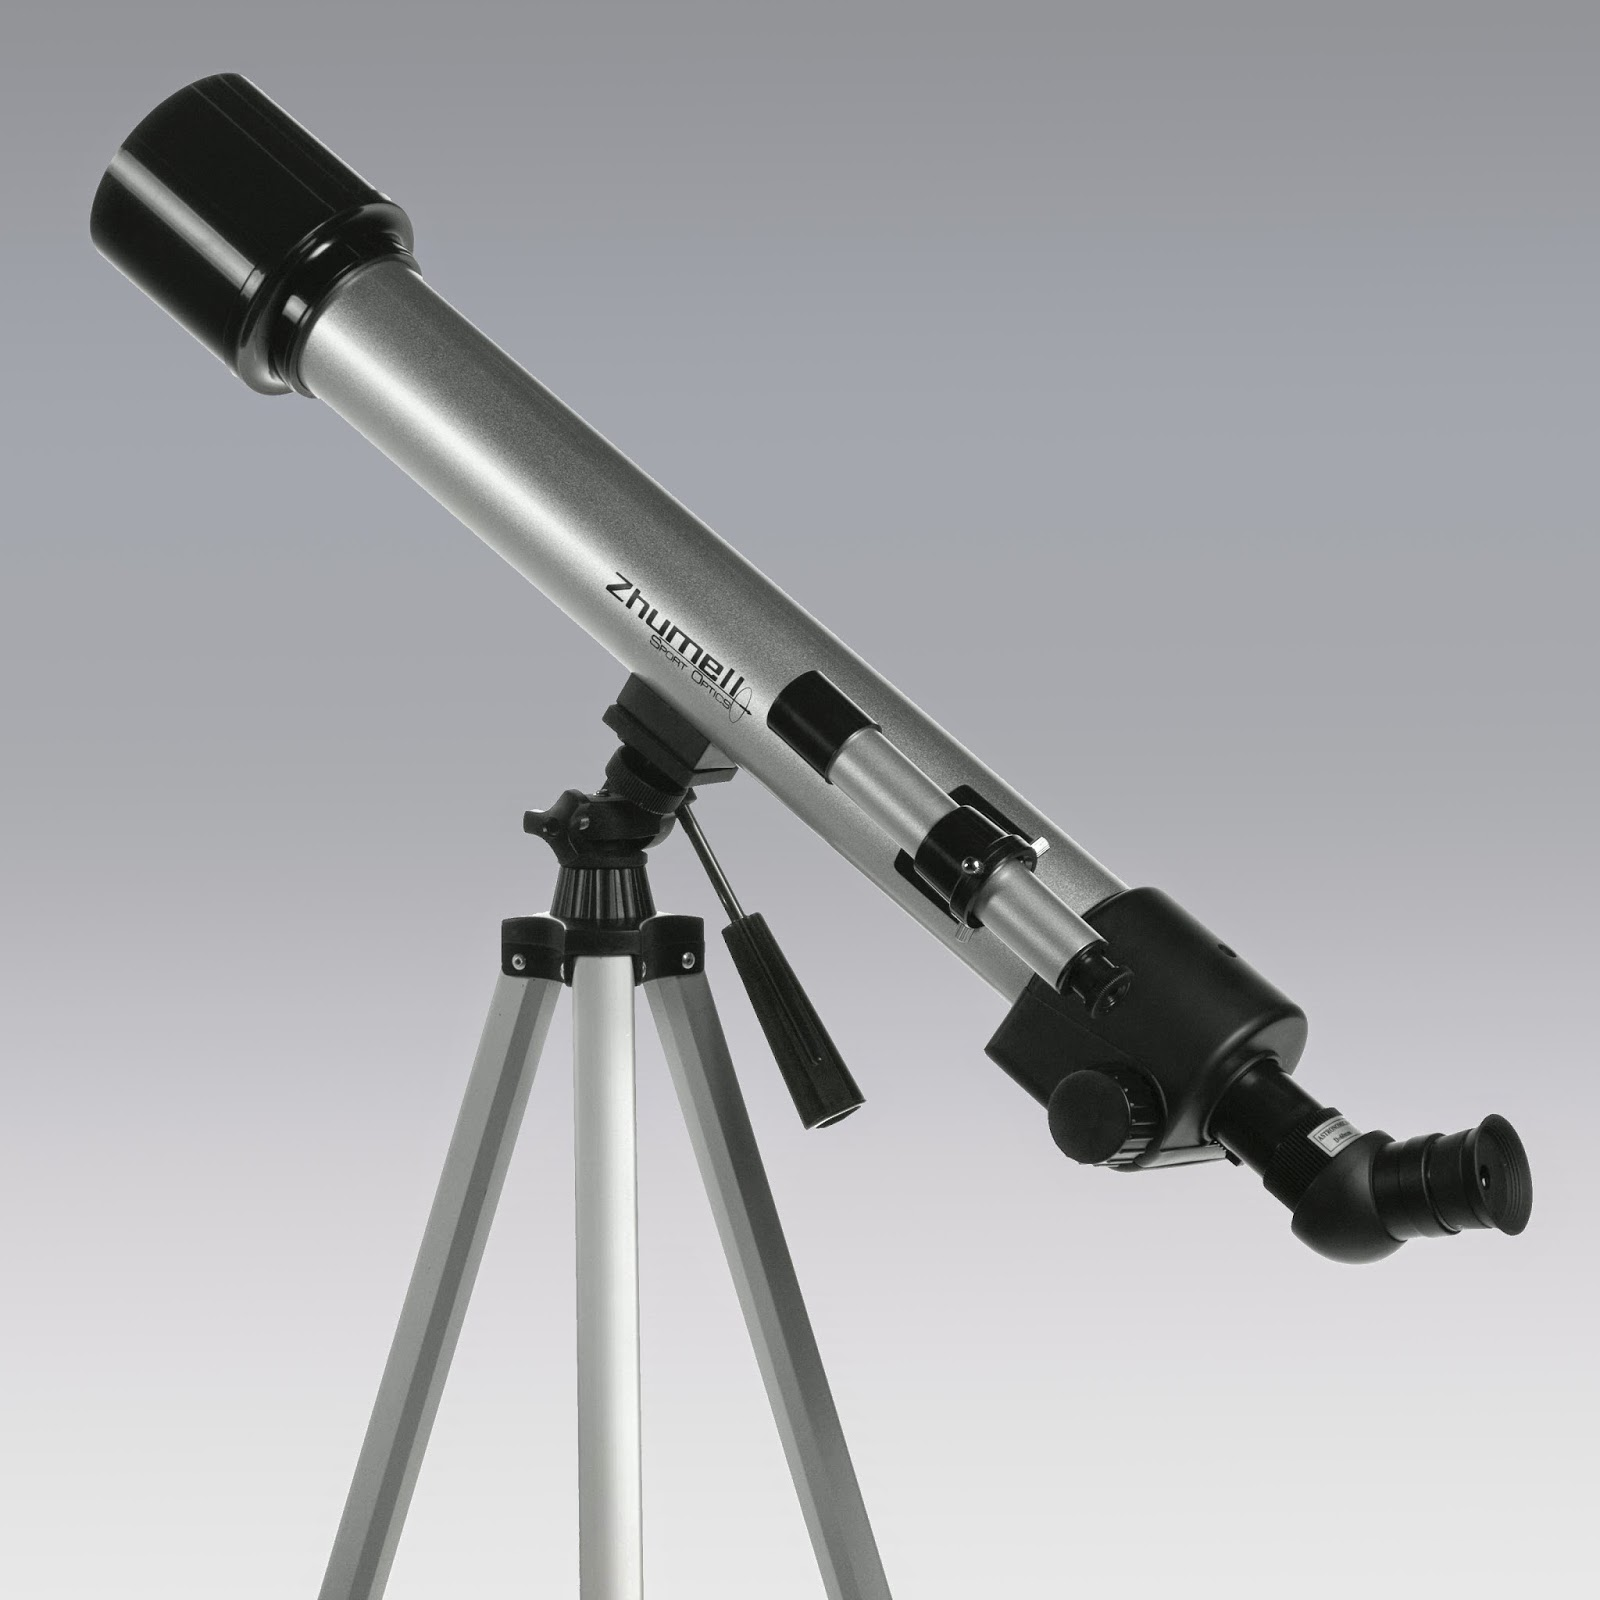 Amazing Scientific Devices - Telescope